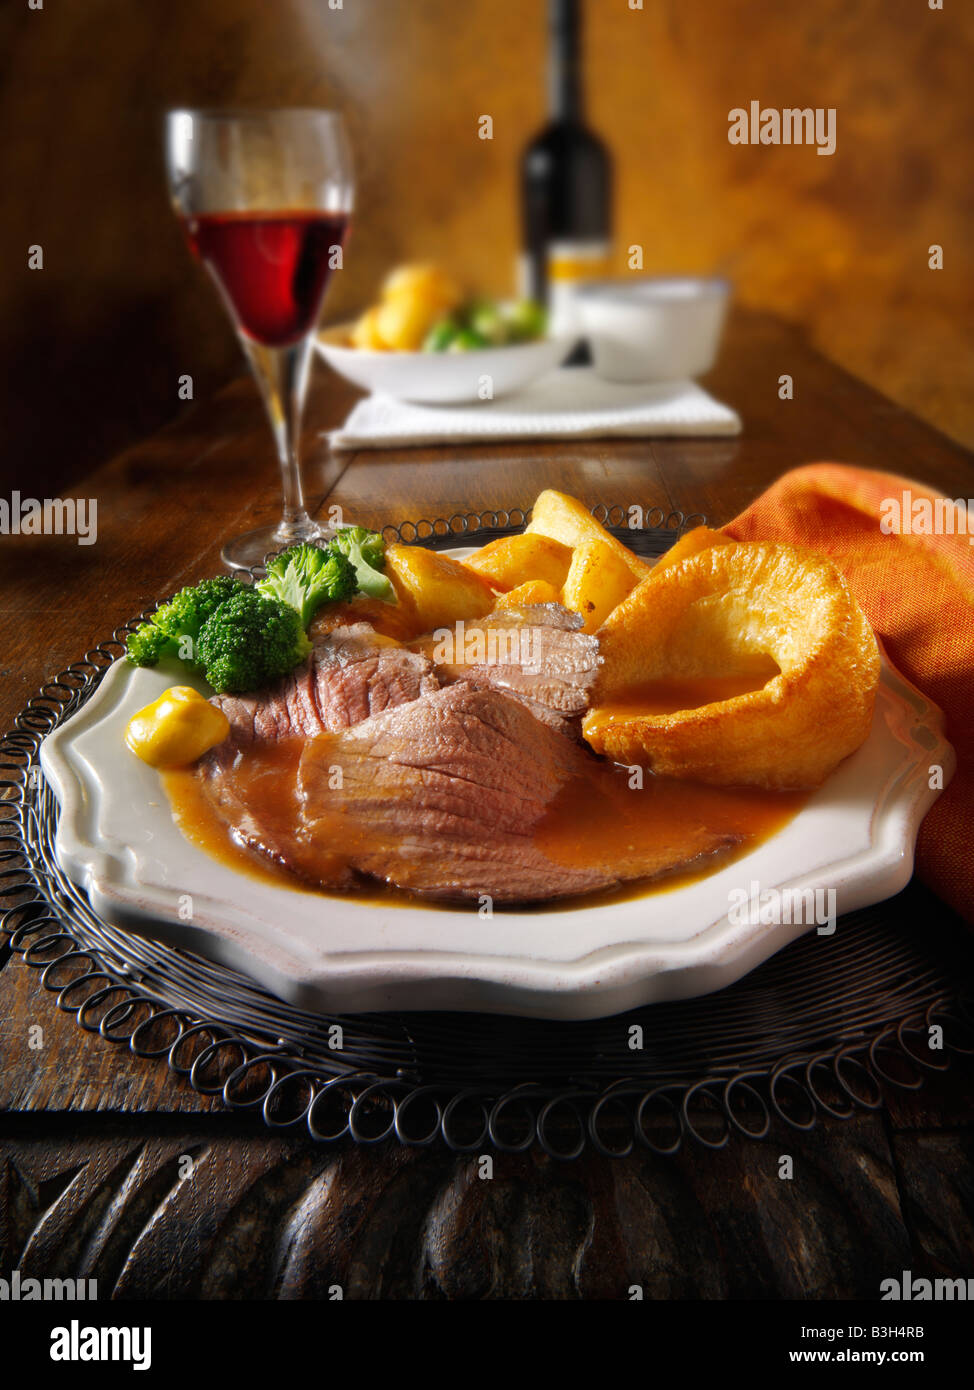 Traditional British roast dinner with roast beef, roast potatoes, yorkshire puddings. 21 days hung - Stock Image